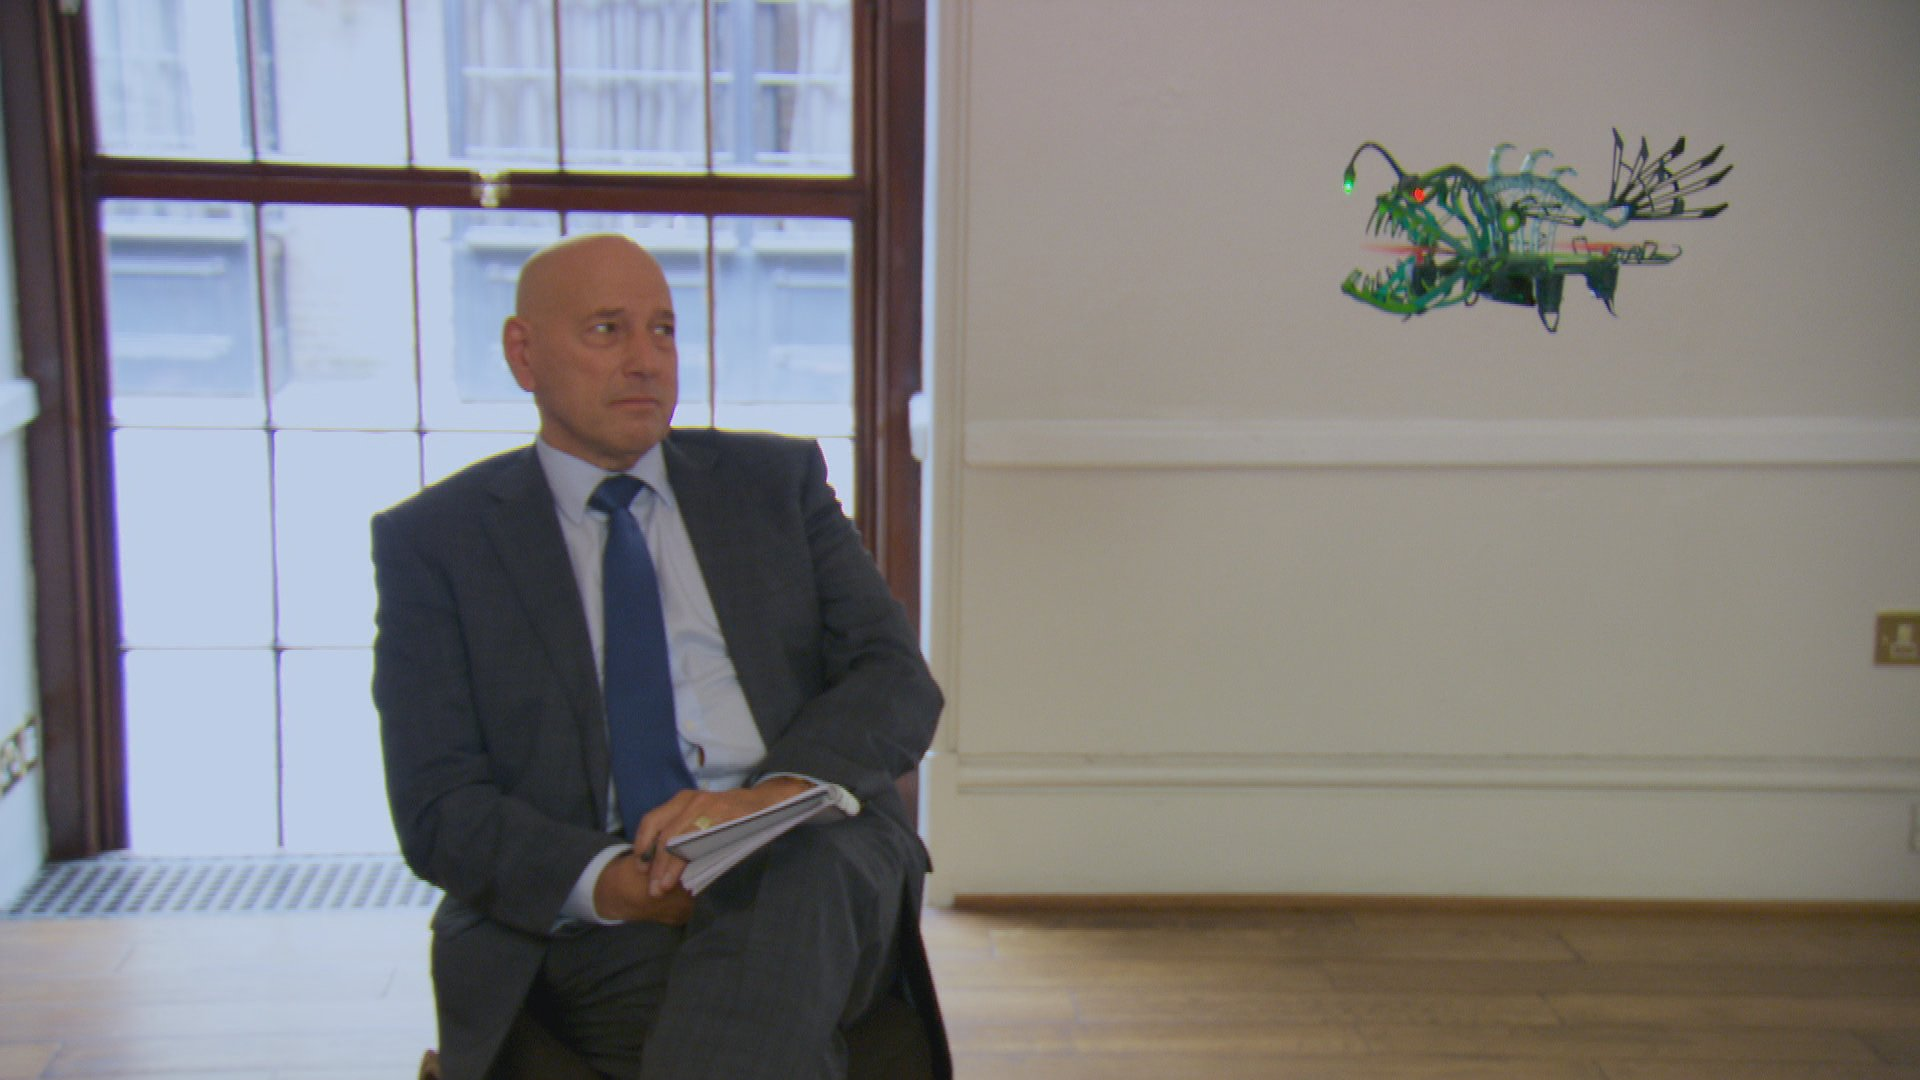 Tomorrows episode of The Apprentice is all about robots. This one looks exactly like Claude. https://t.co/CGVZN0vLcU